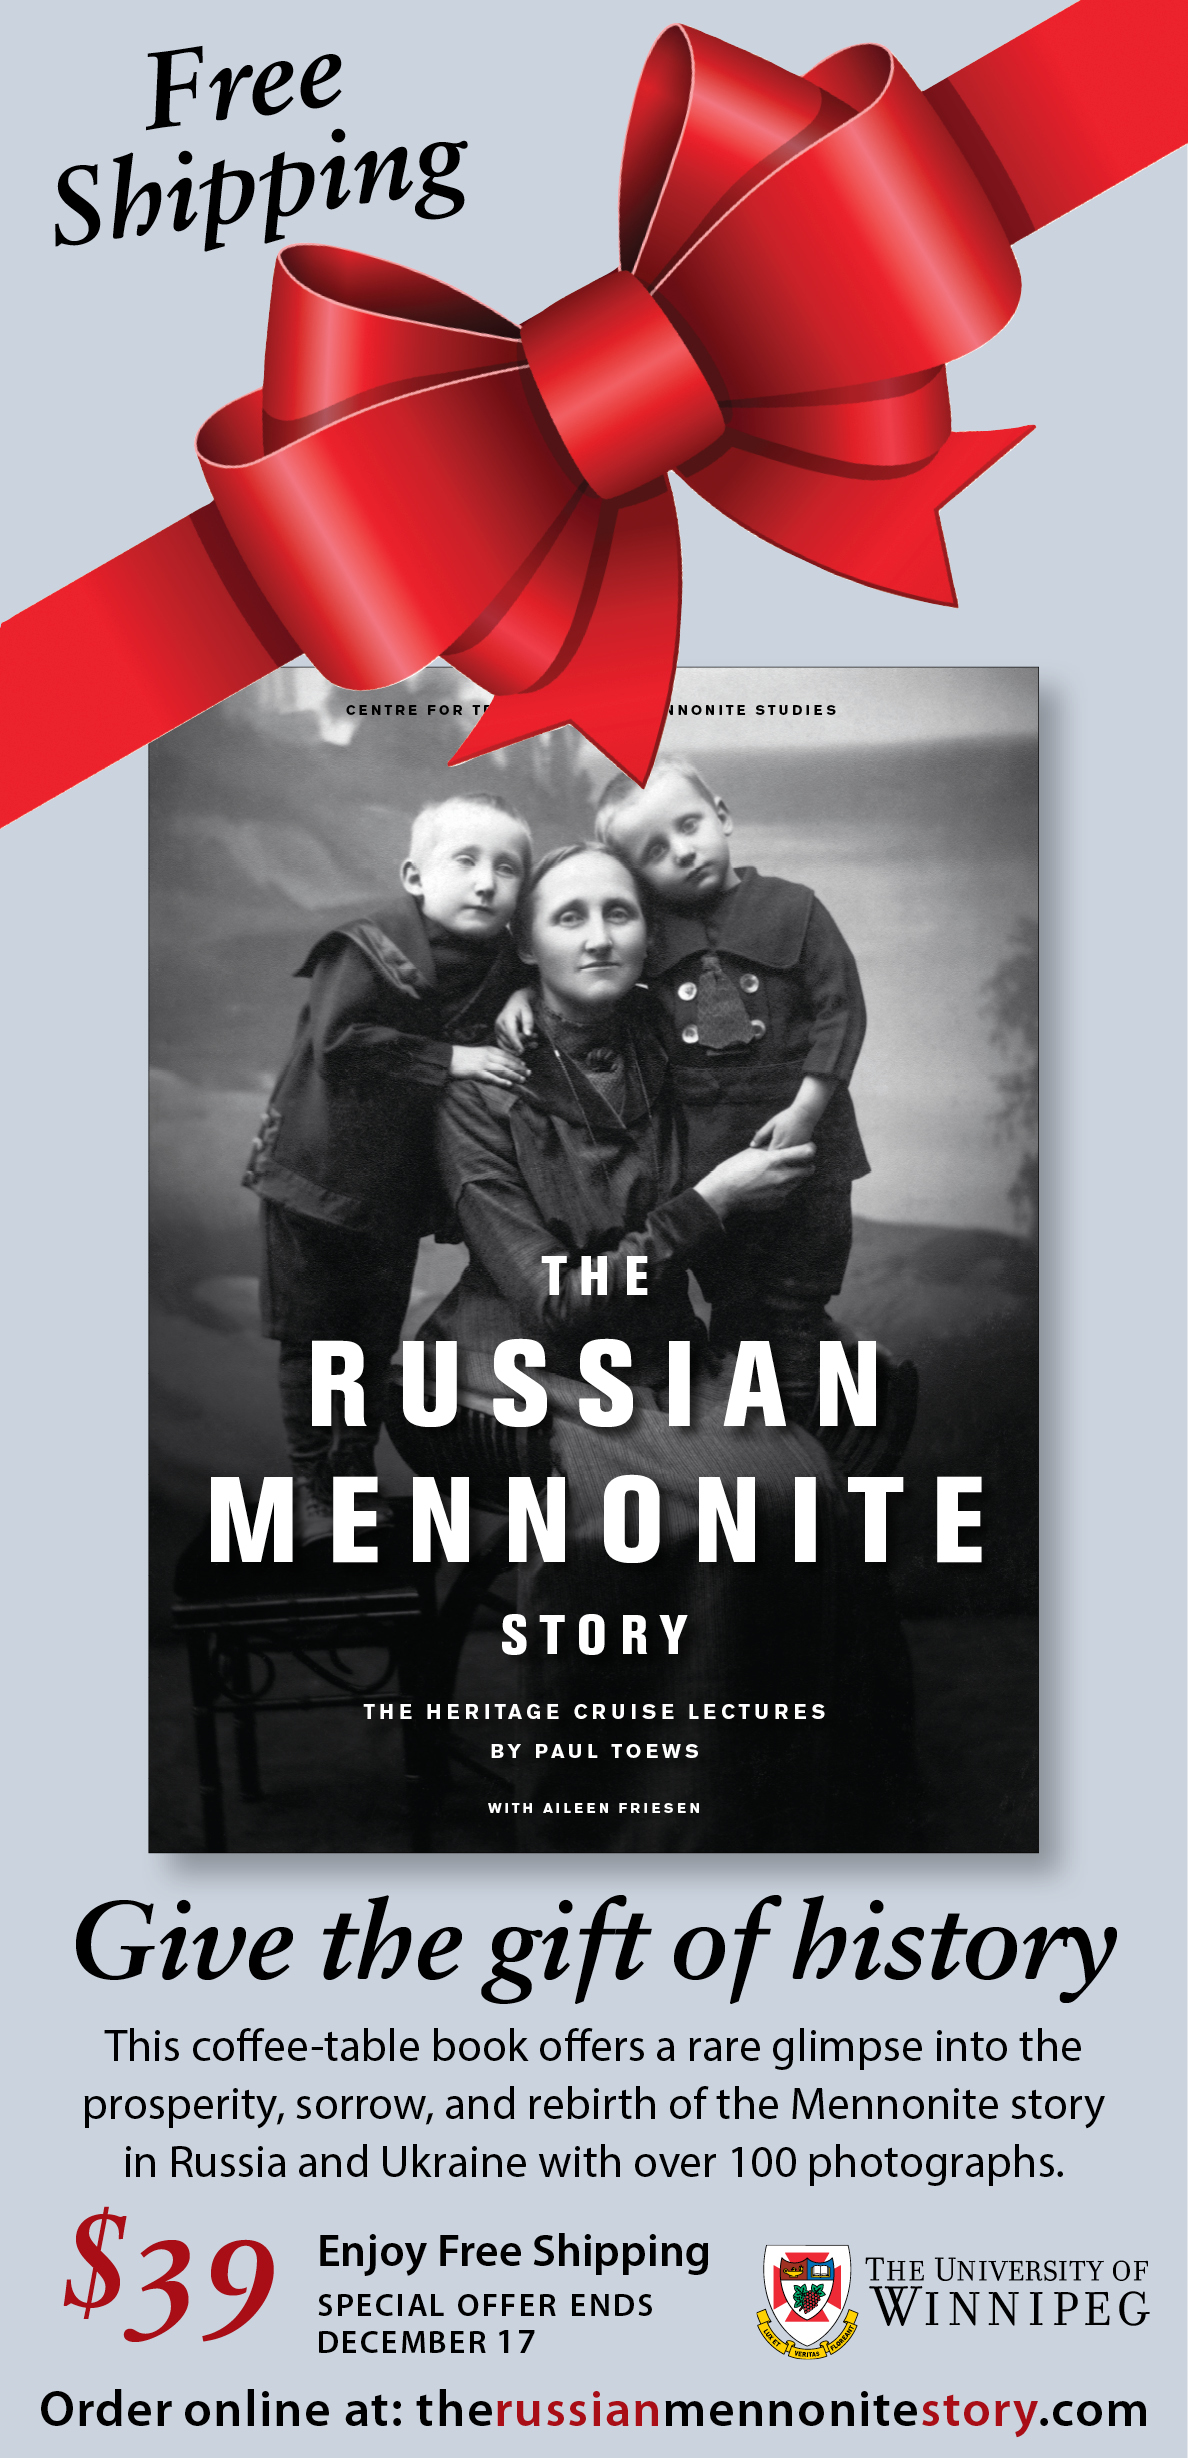 Rusian Mennonite coffee table book